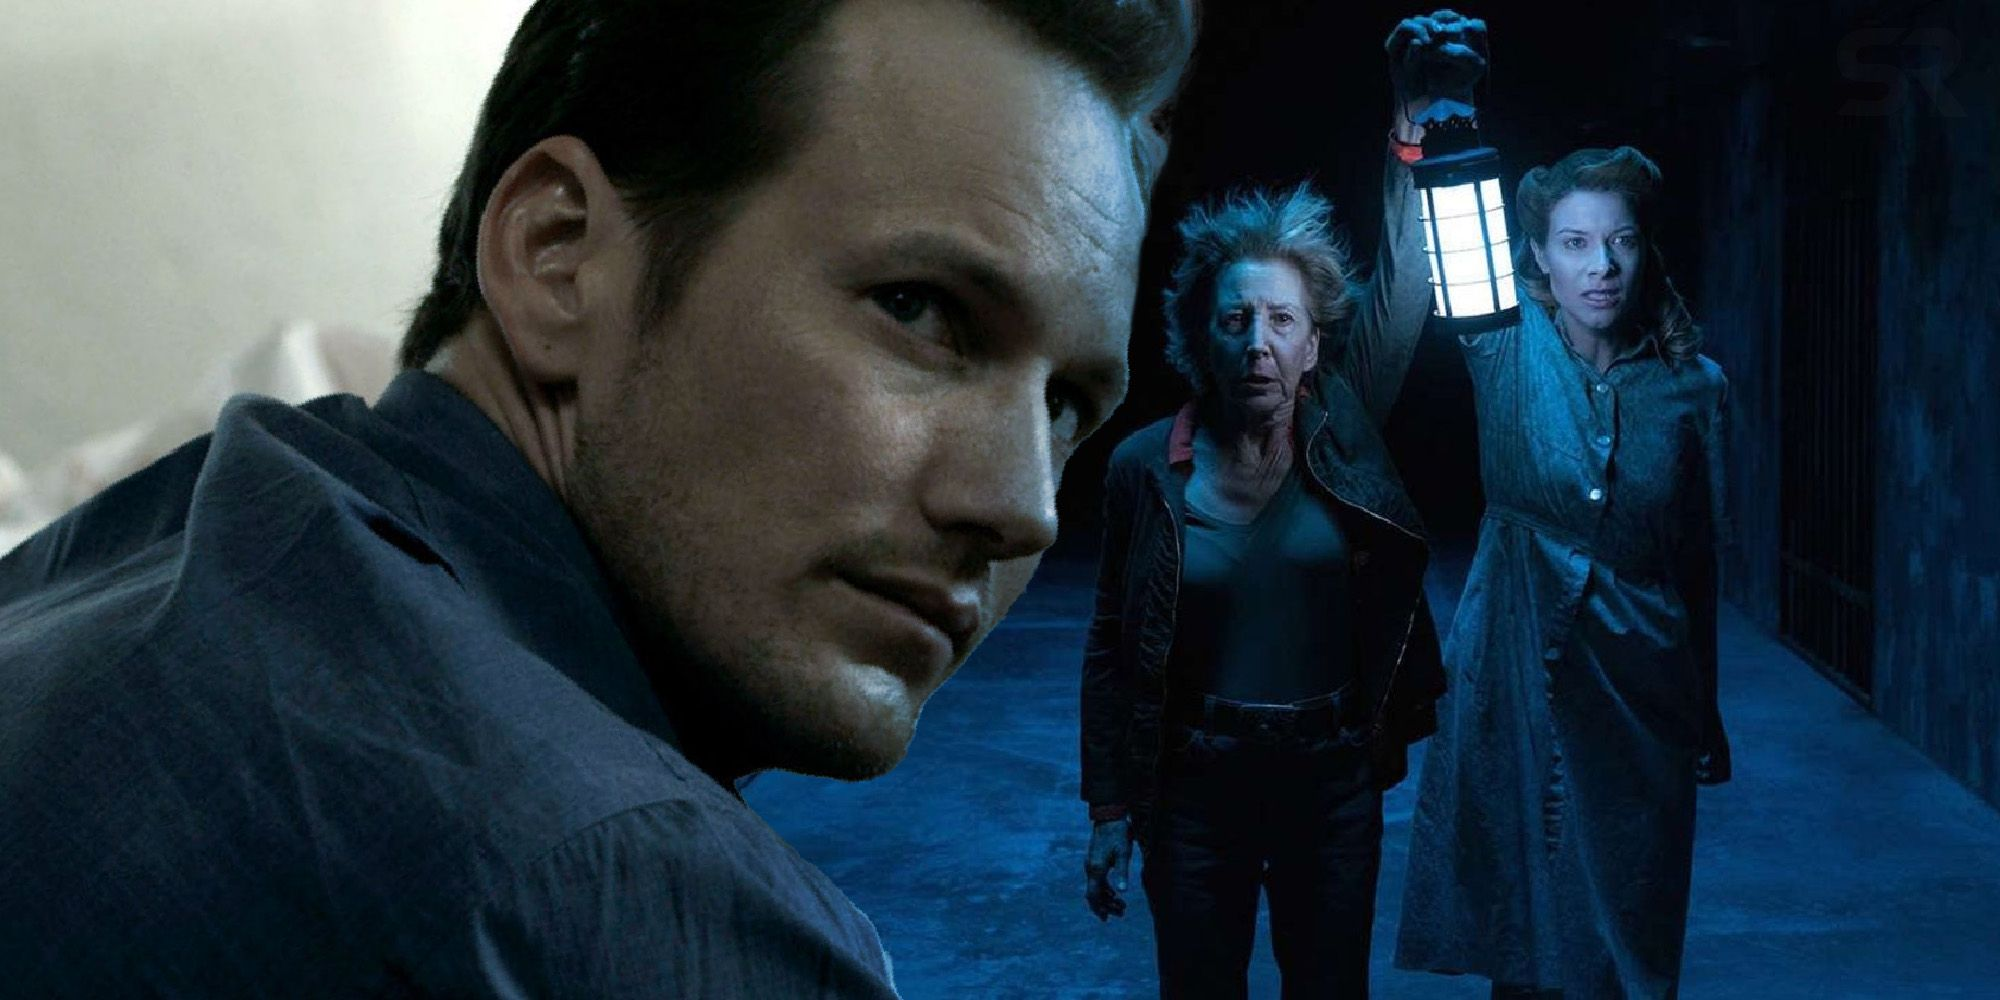 Insidious 5 Updates: Release Date & Story | Screen Rant